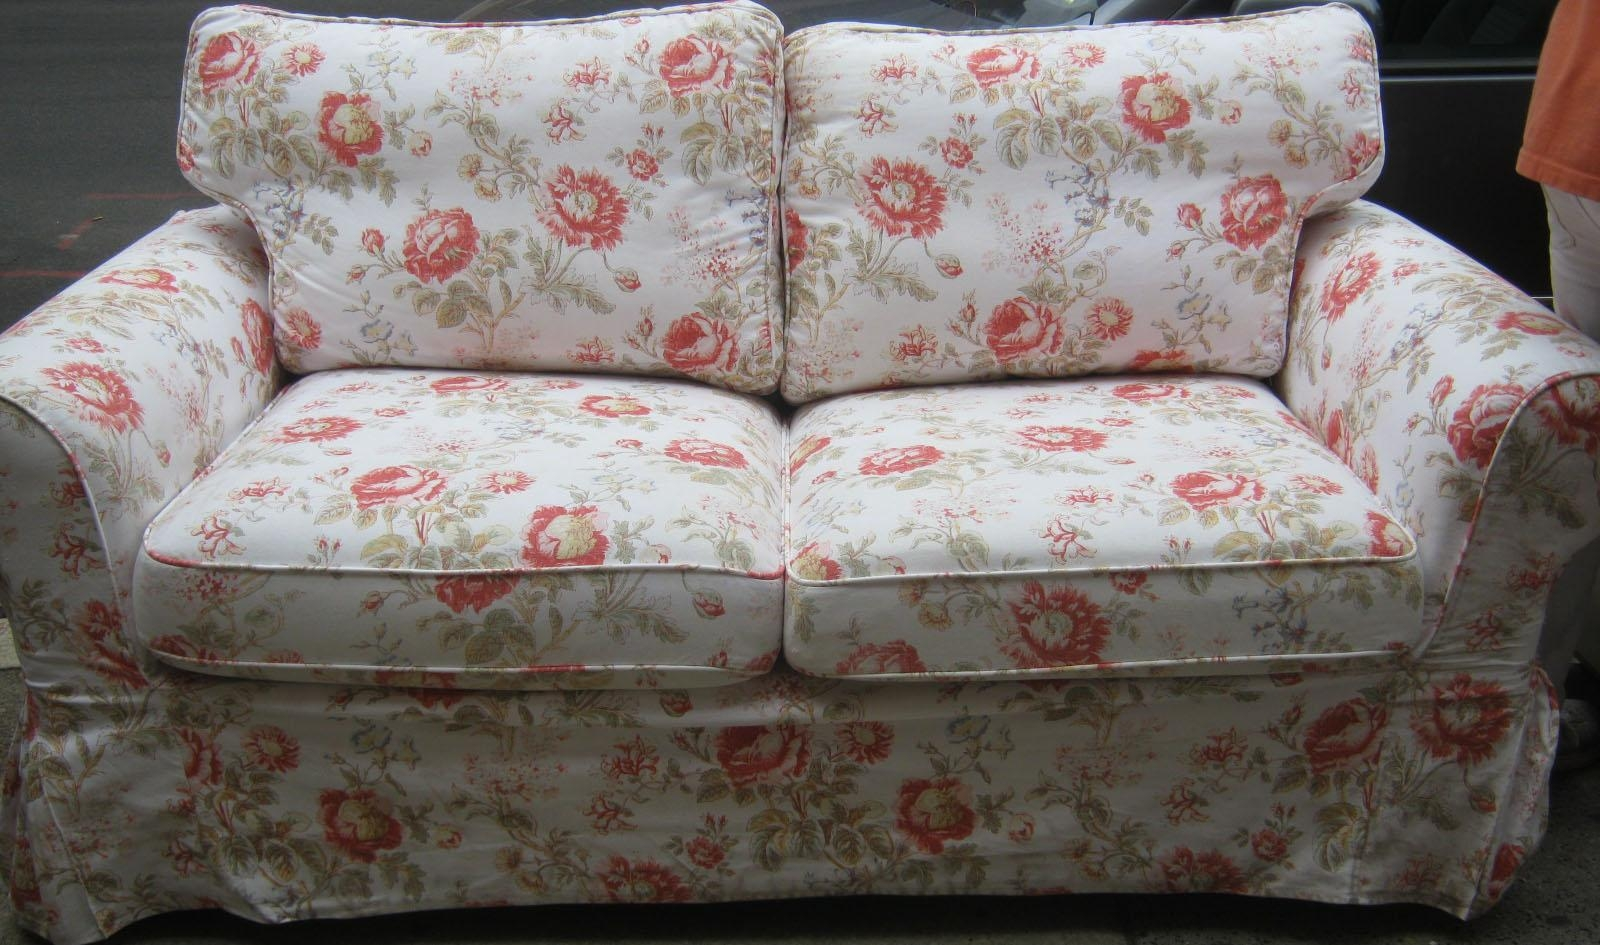 Brilliant Patterned Couch Slipcovers Advice On Ideas Intended For Patterned Sofa Slipcovers (Image 1 of 20)